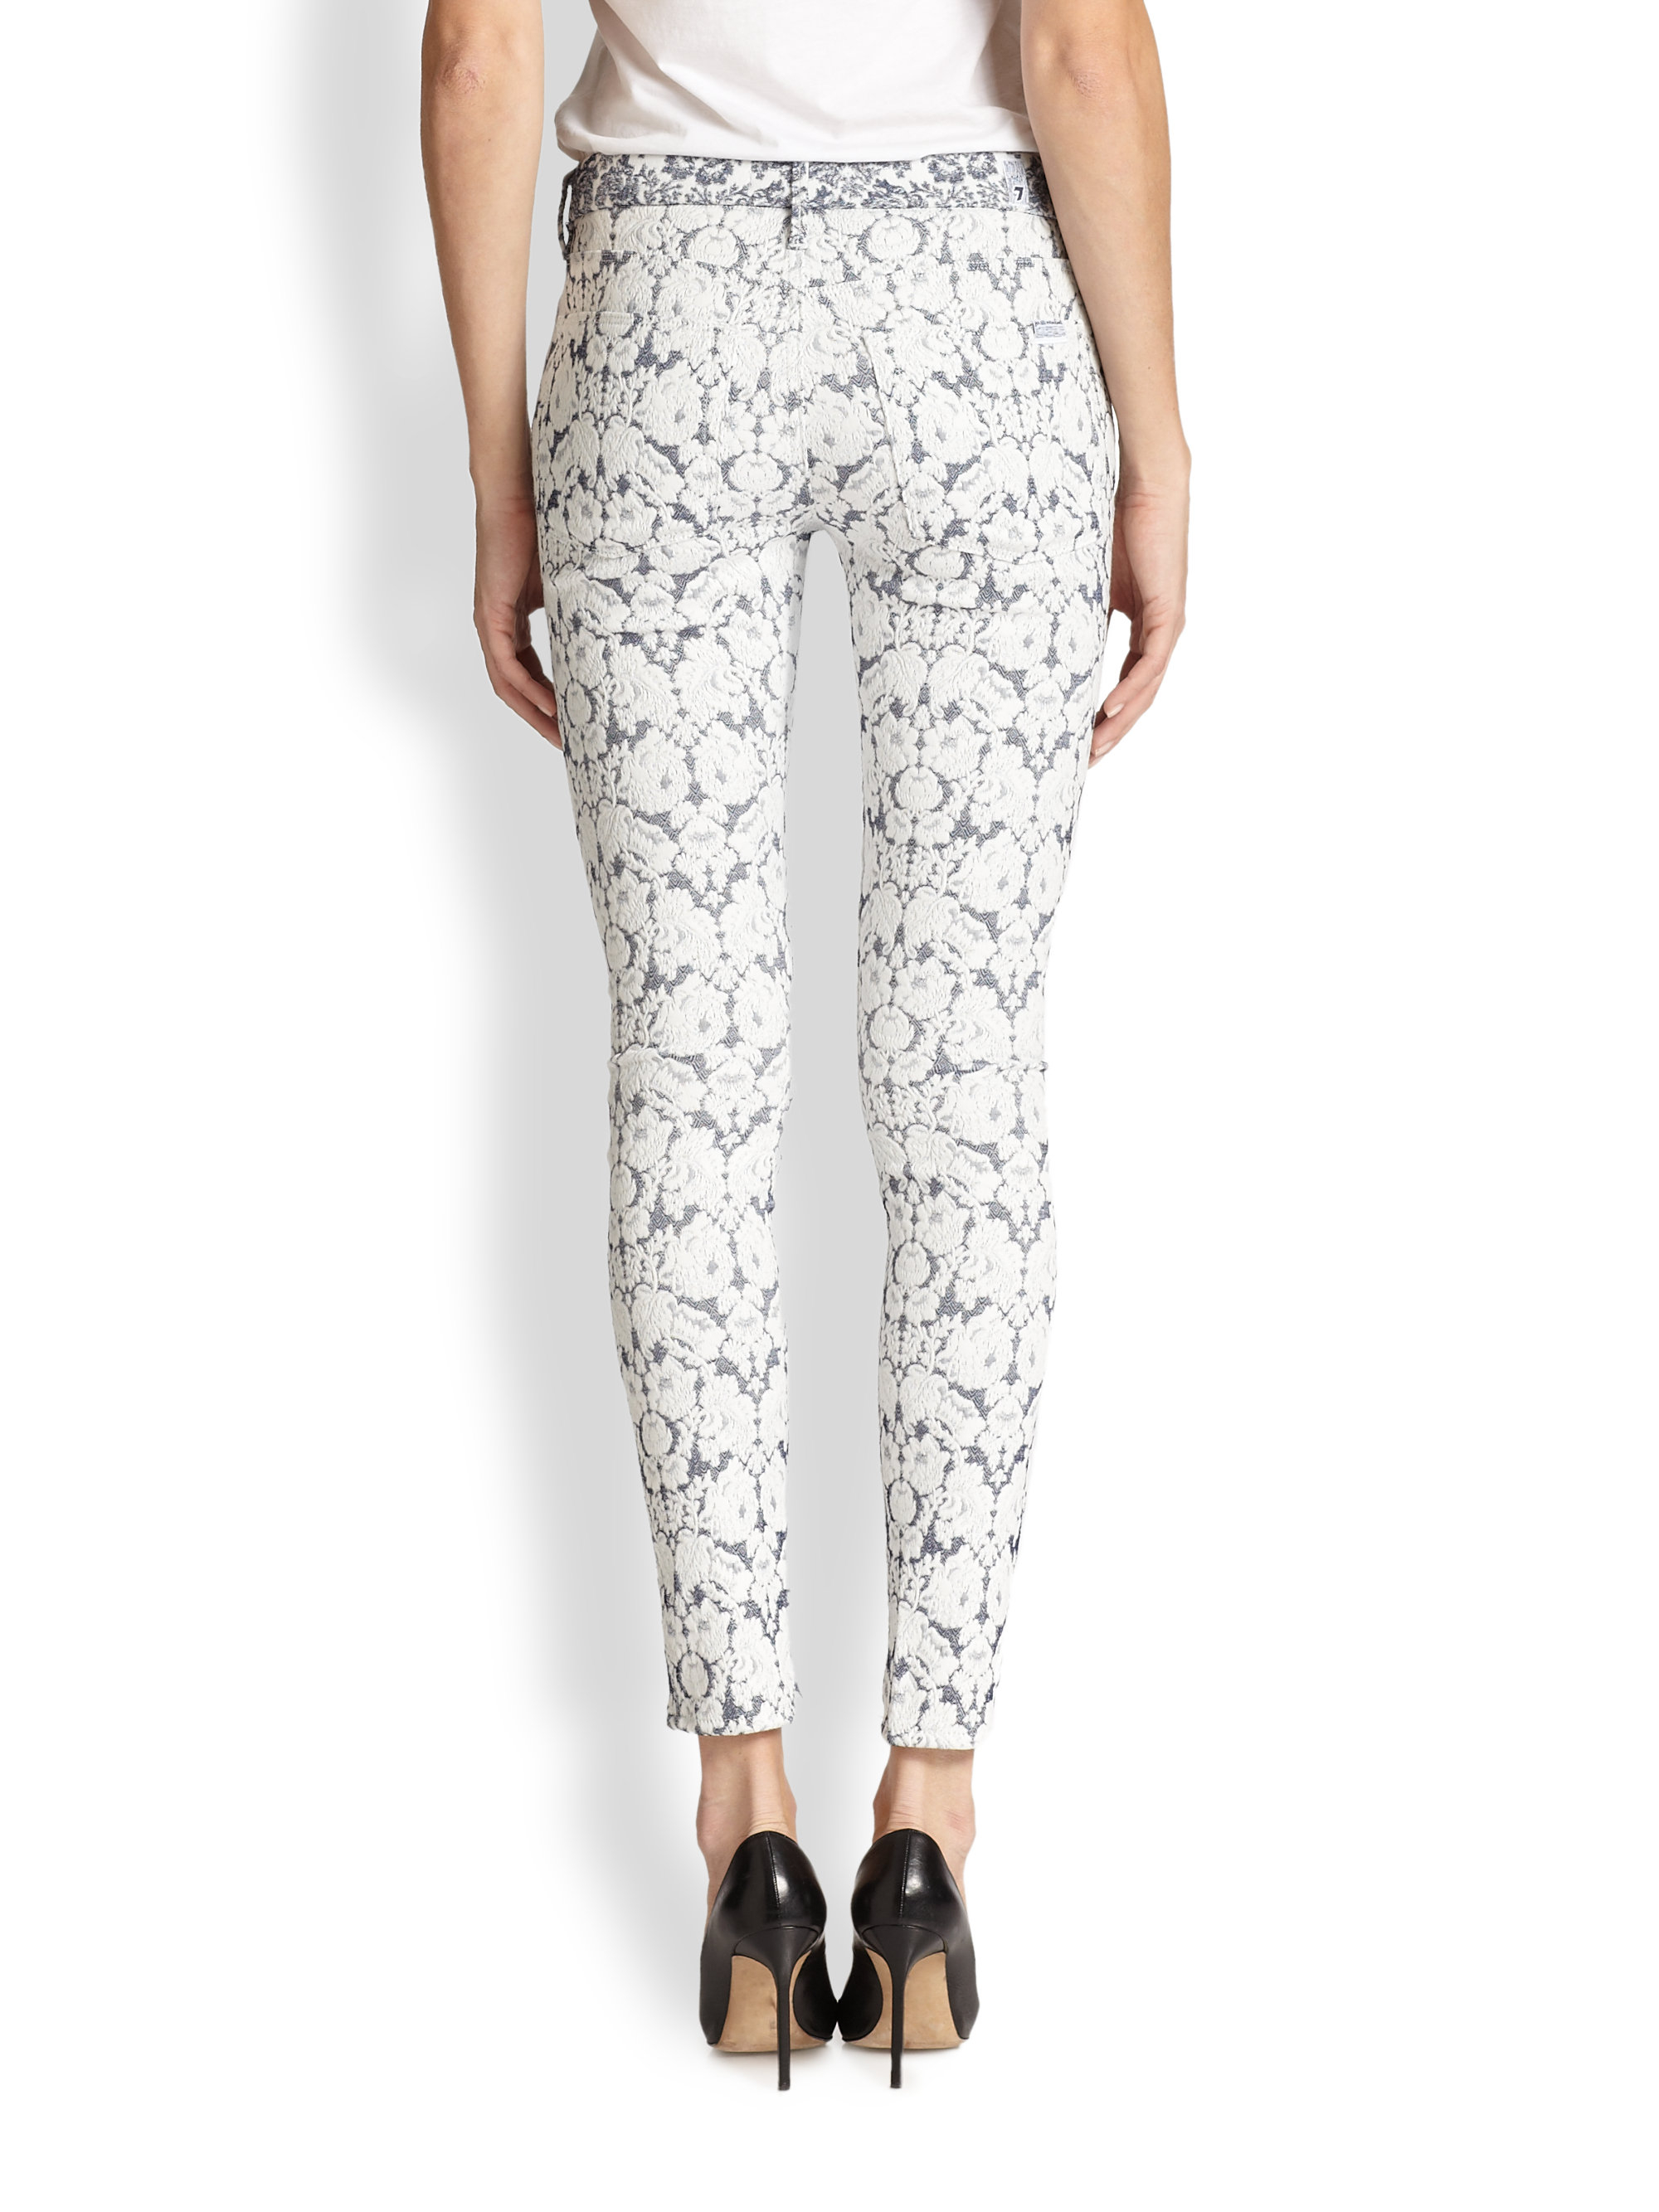 7 for all mankind Tailor Floral Jacquard Skinny Ankle Jeans in ...